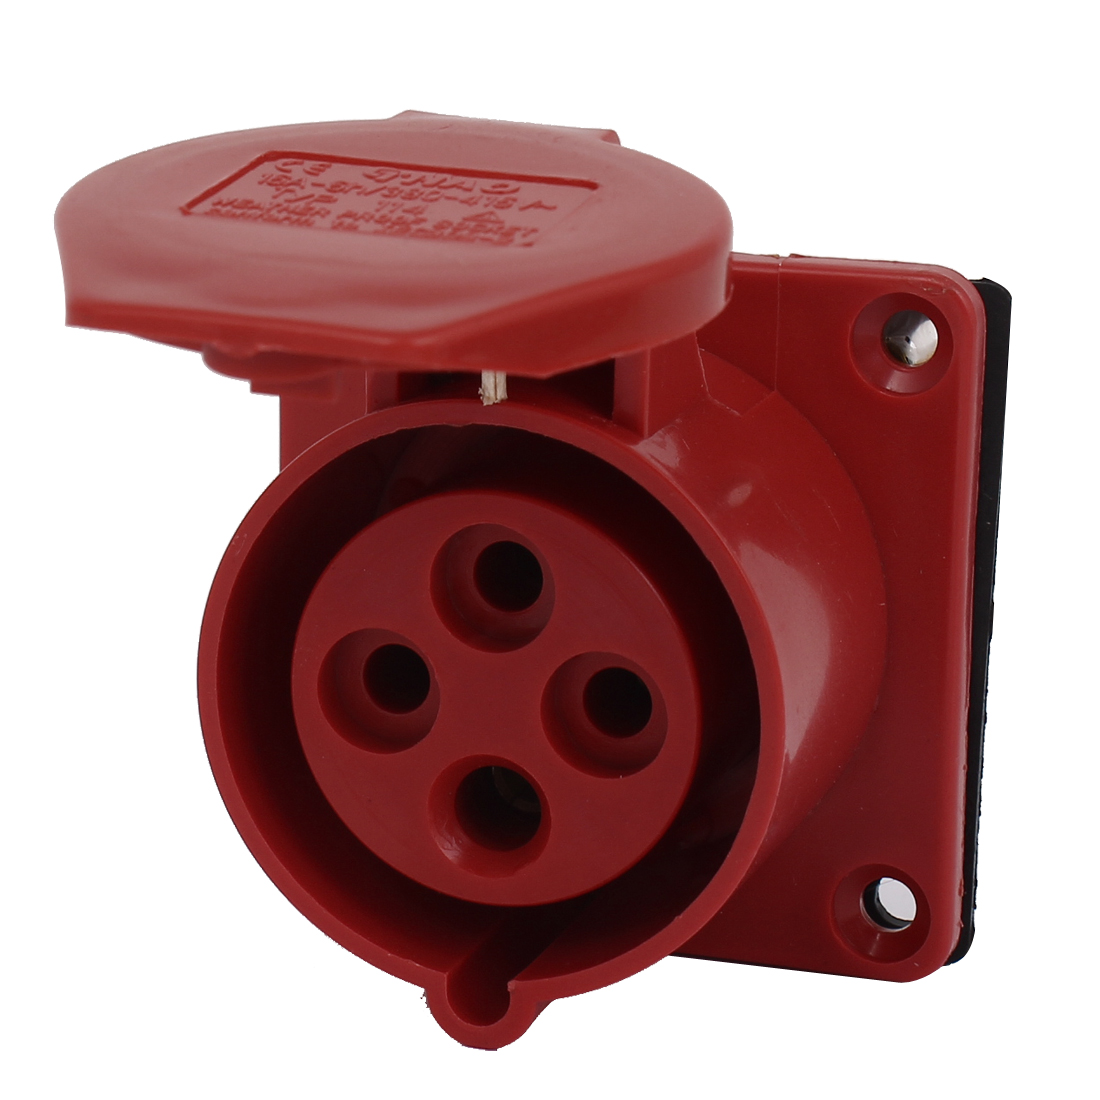 AC 380-415V 16A IEC309-2 IP44 3P+E Industrial Socket Waterproof Connector Red